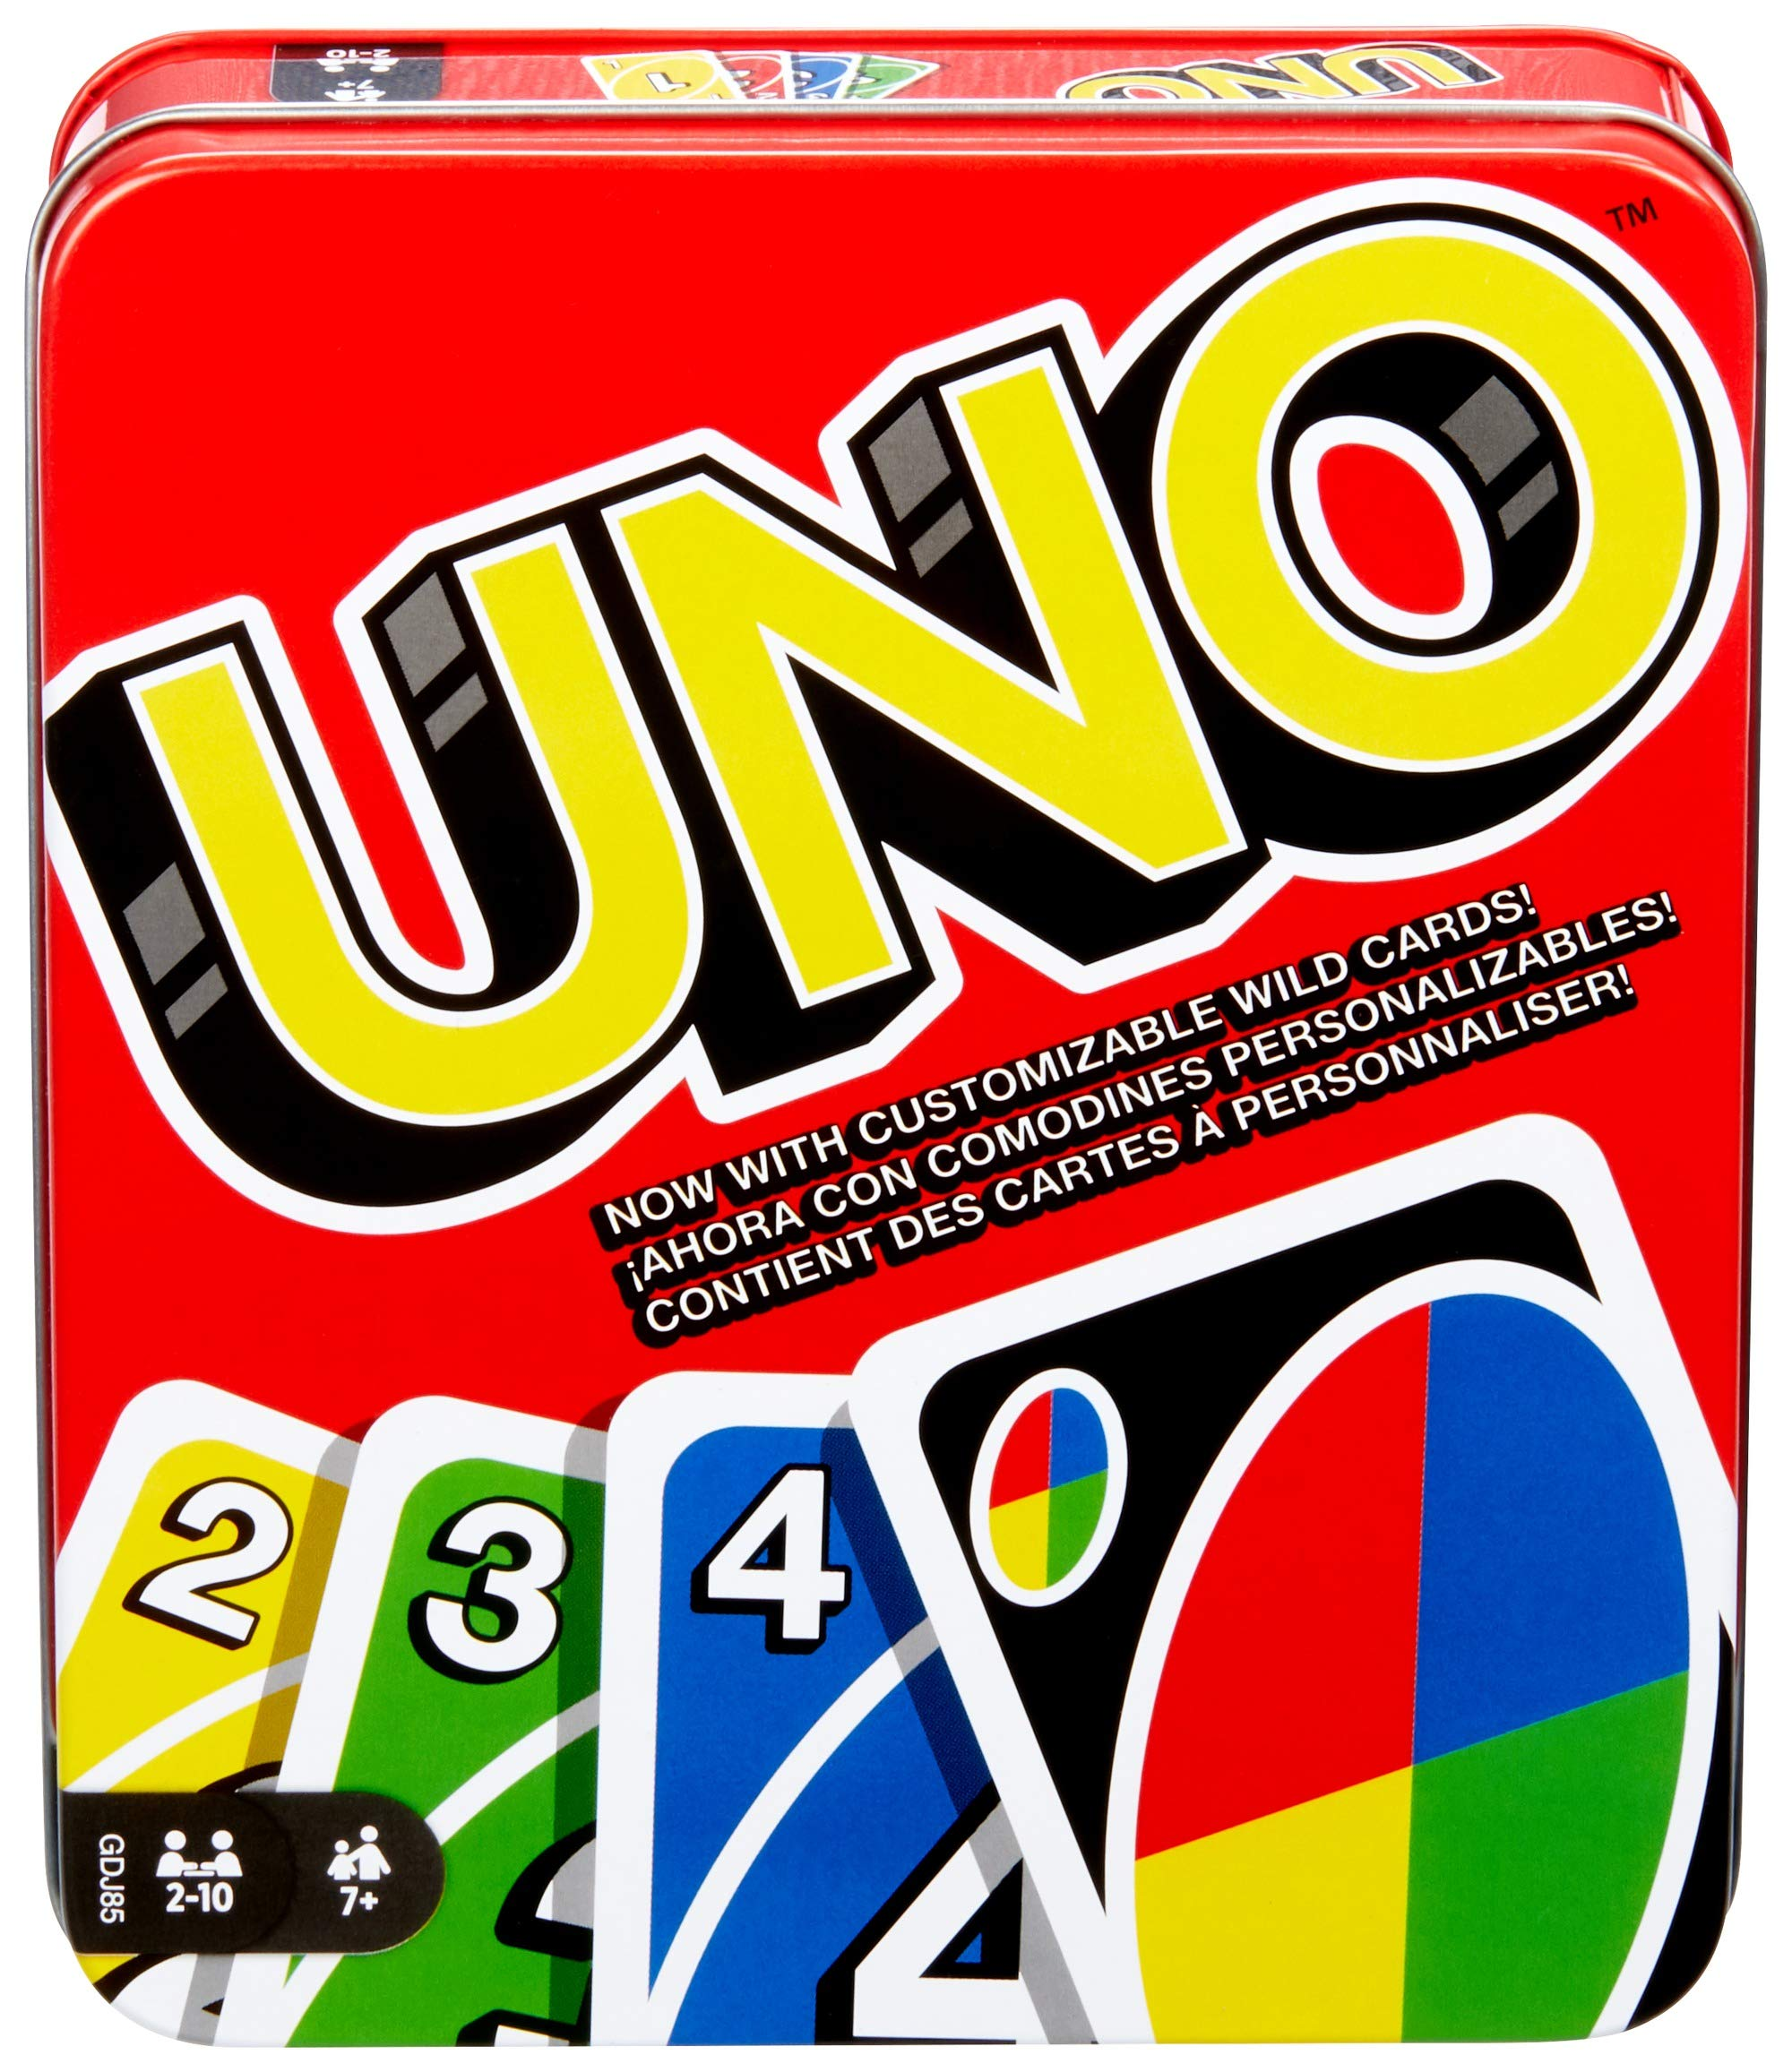 Mattel Games UNO: Family Card Game with 112 Cards in a Sturdy Storage Tin Travel-Friendly Makes a Great Gift for 7 Year Olds and Up [Amazon Exclusive] (GDJ85)